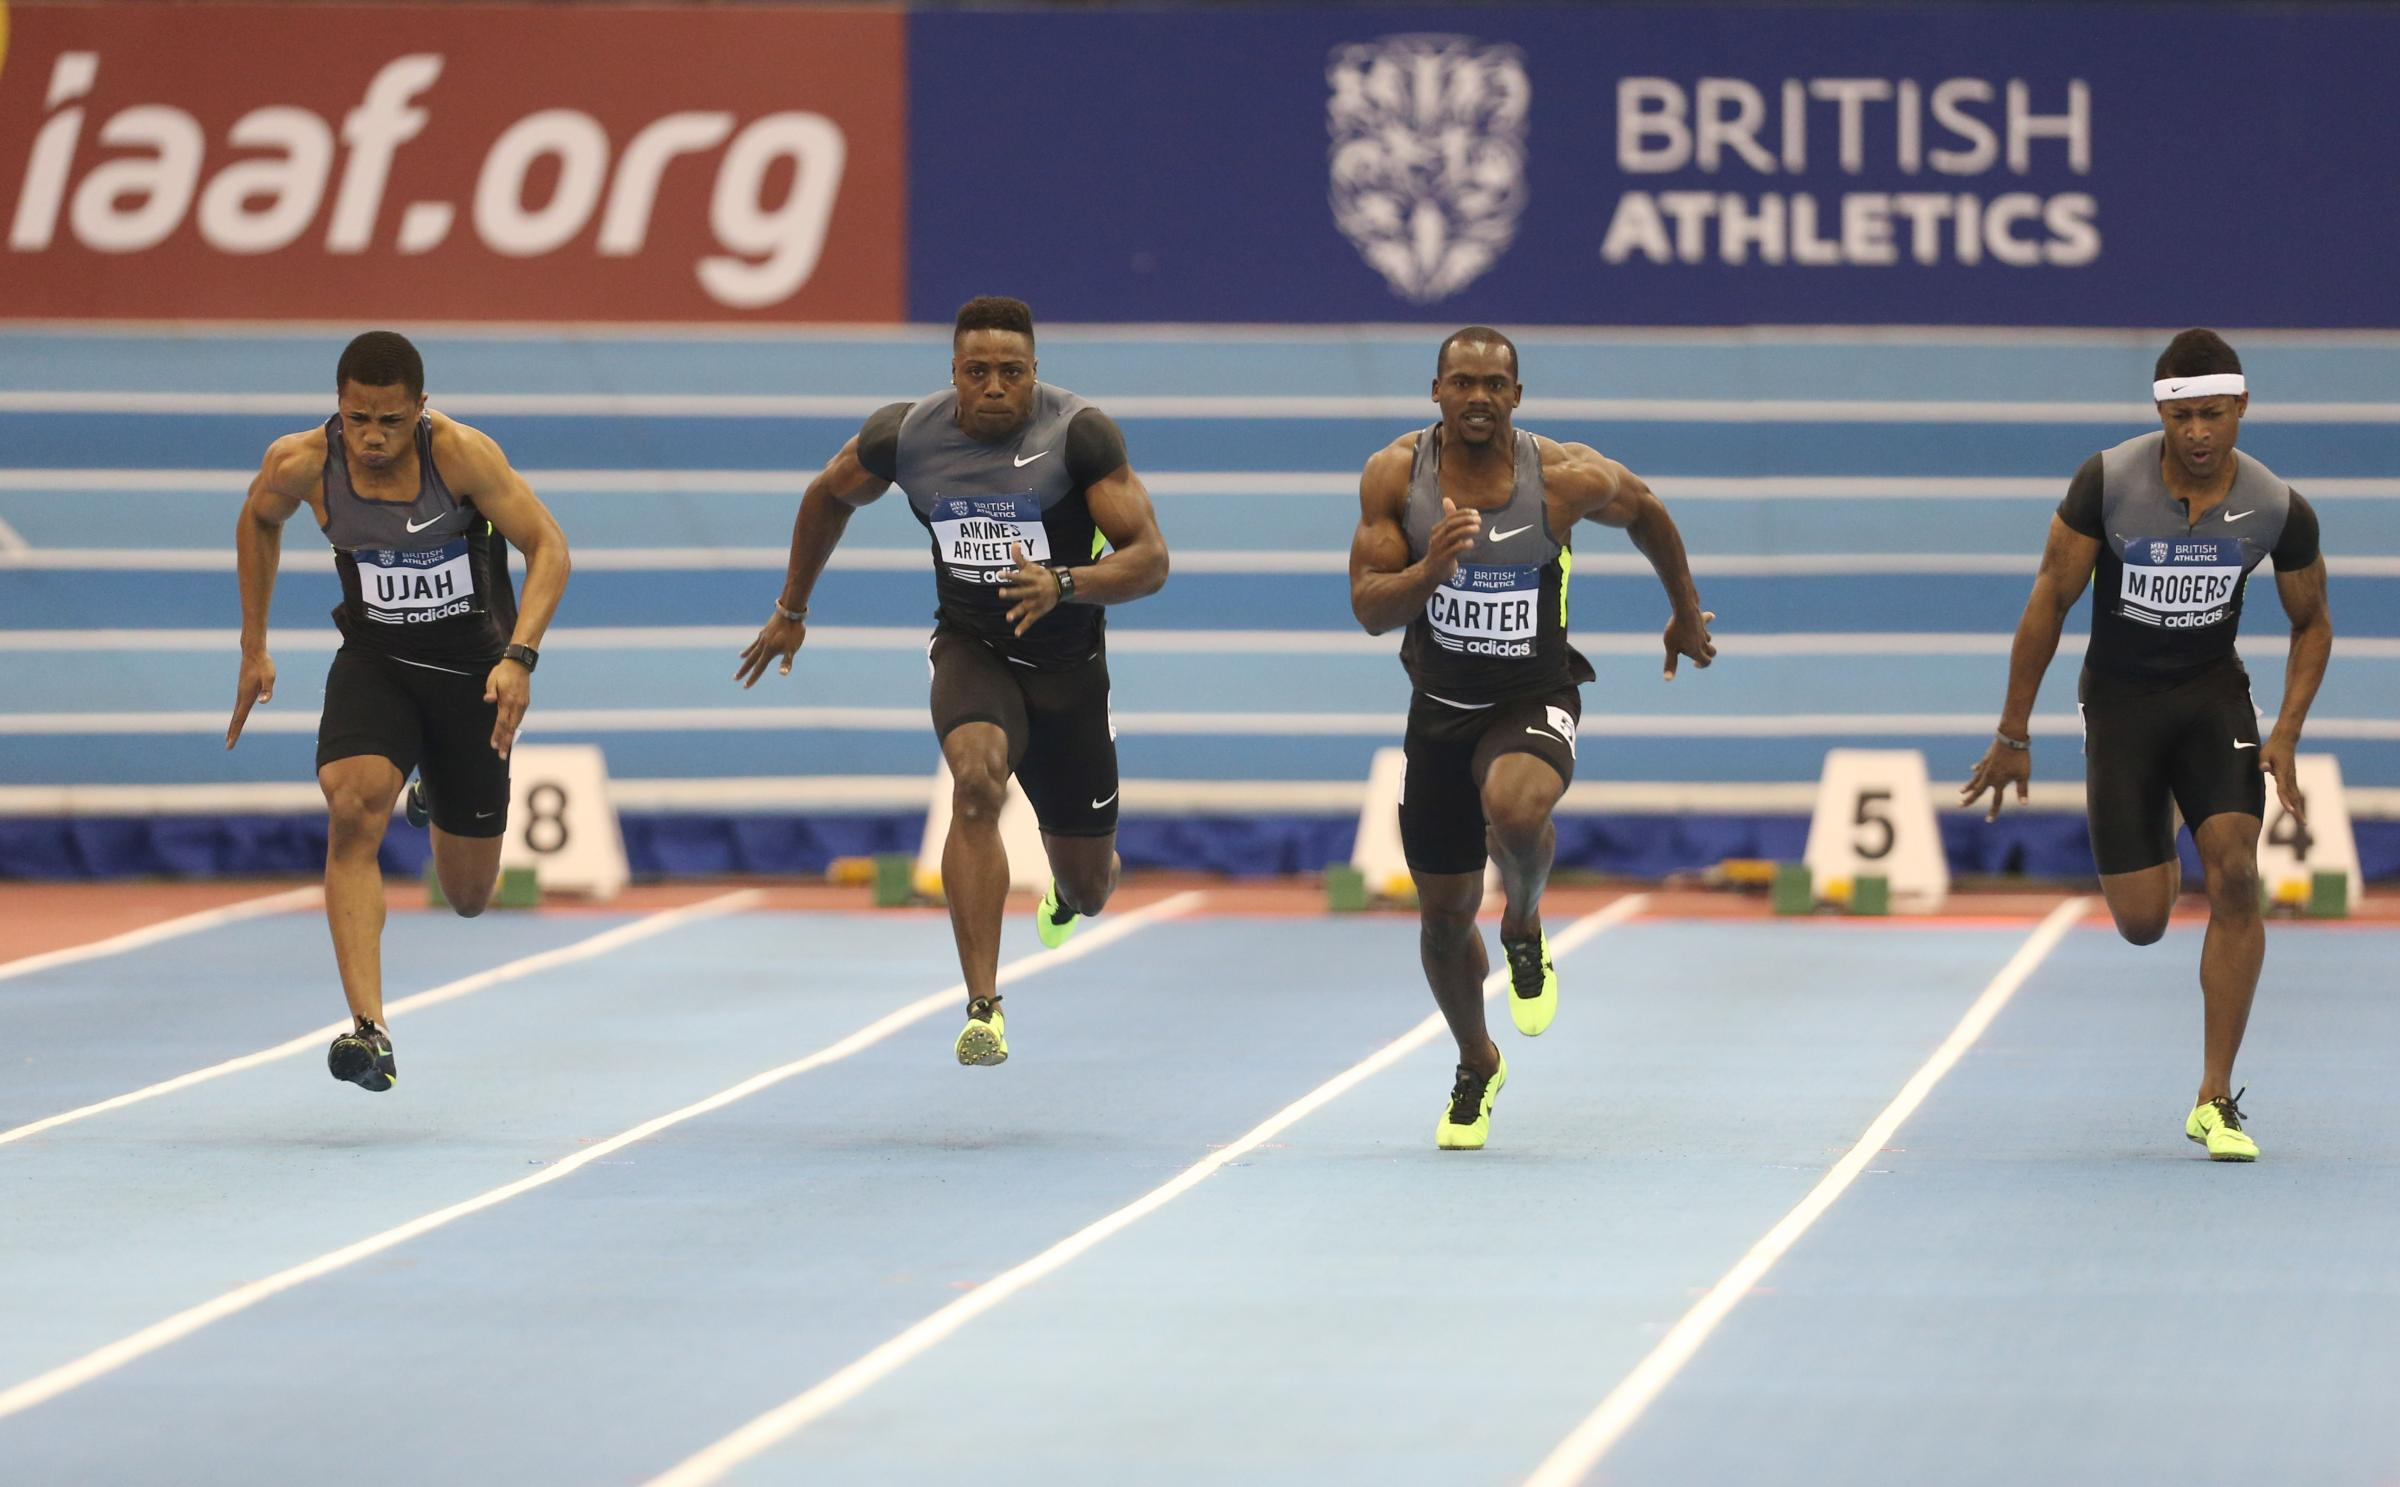 Chijindu Ujah (far left) in the 2013 British Athletics Grand Prix